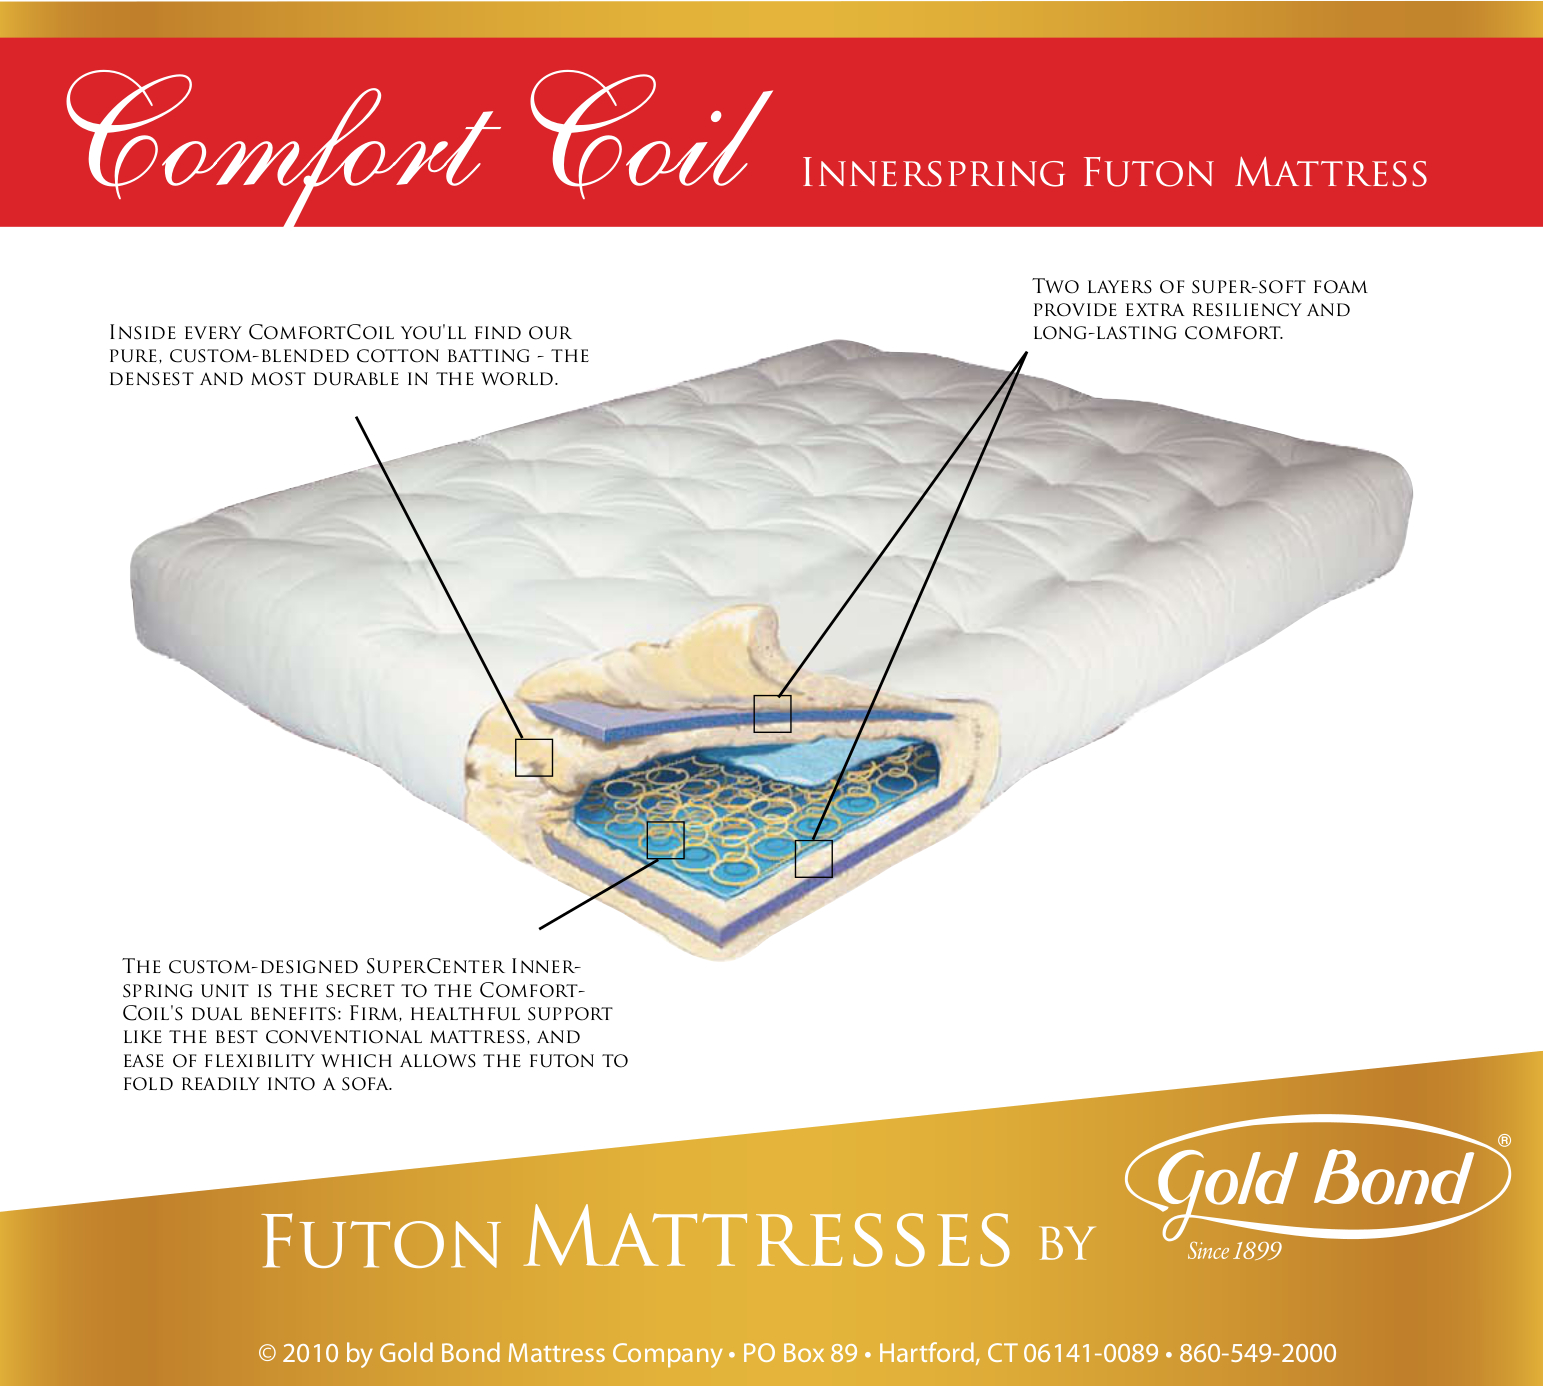 futons roof fence comfortable futon of image mattress ideas black